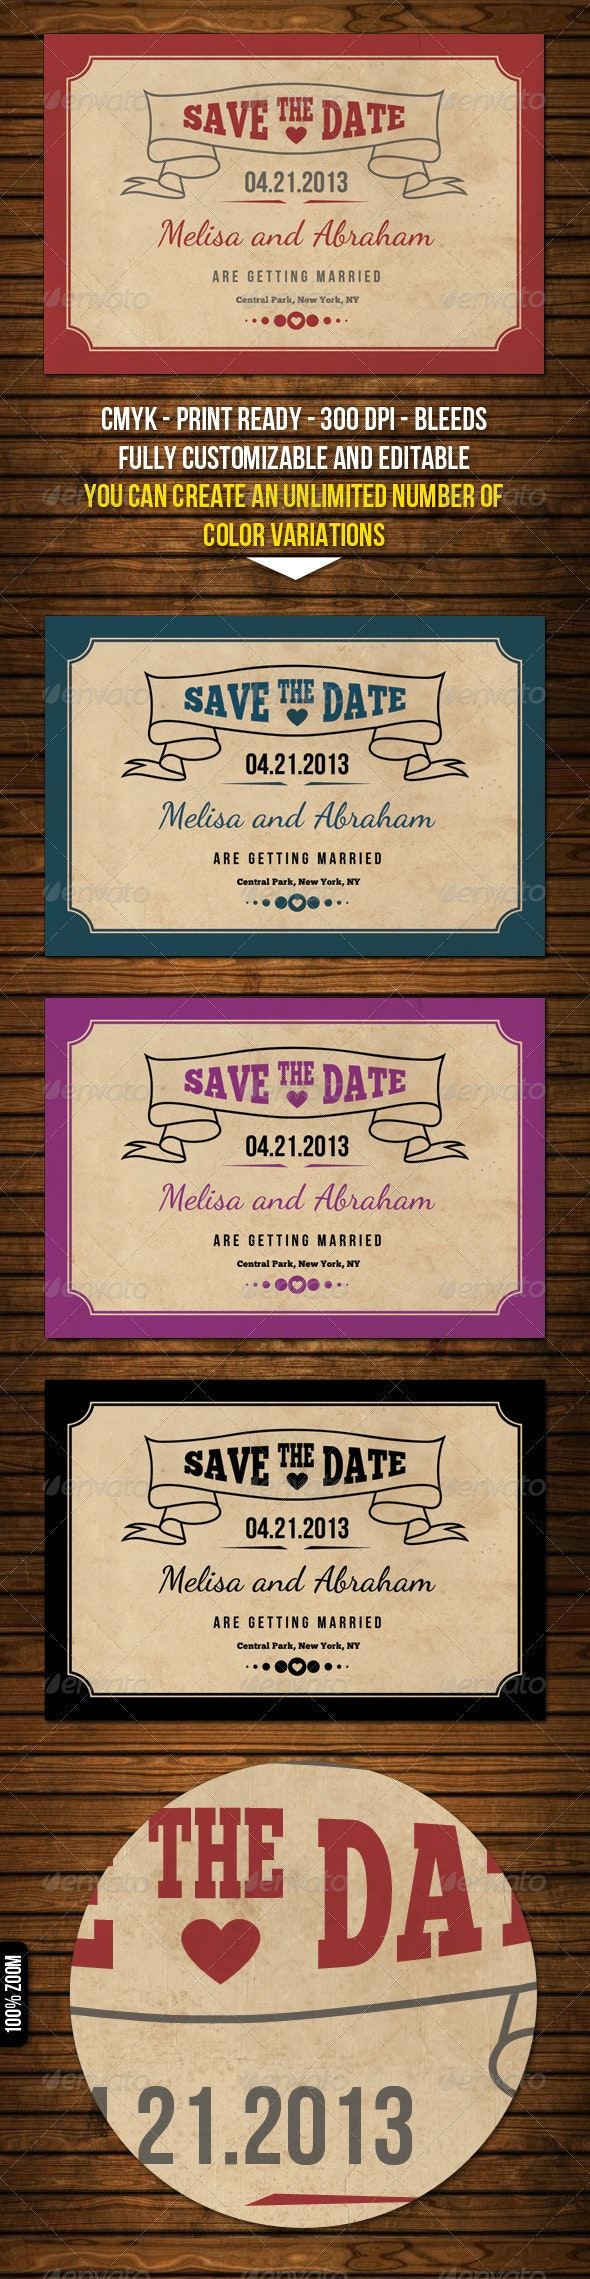 Old Style Save The Date Cards - Weddings Cards & Invites